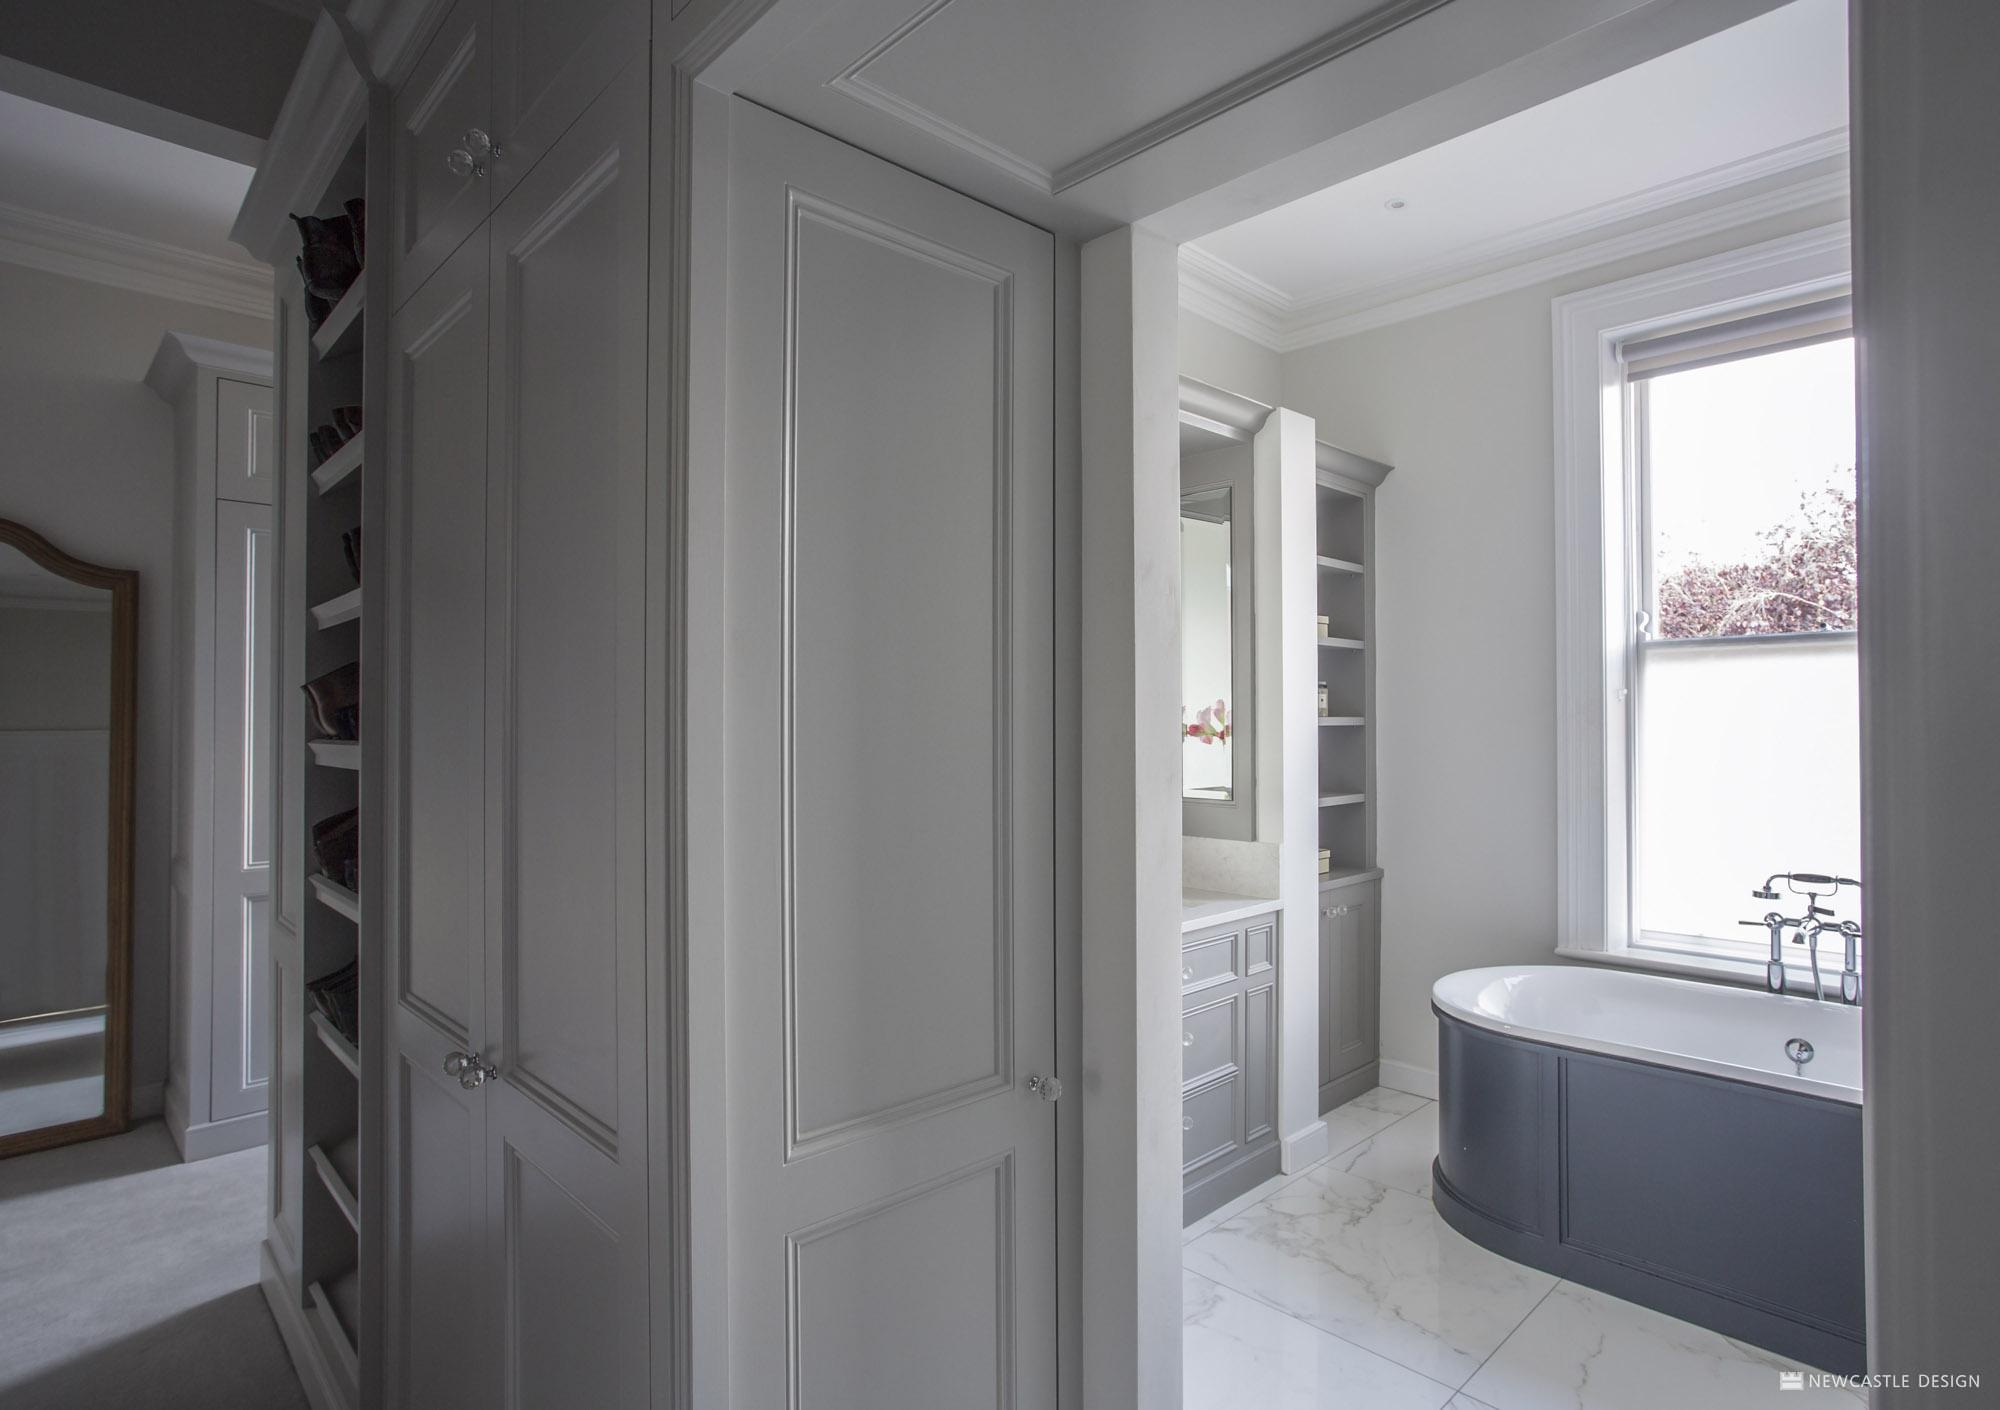 Fitted wardrobes bedroom furniture dublin ireland for Design furniture replica ireland